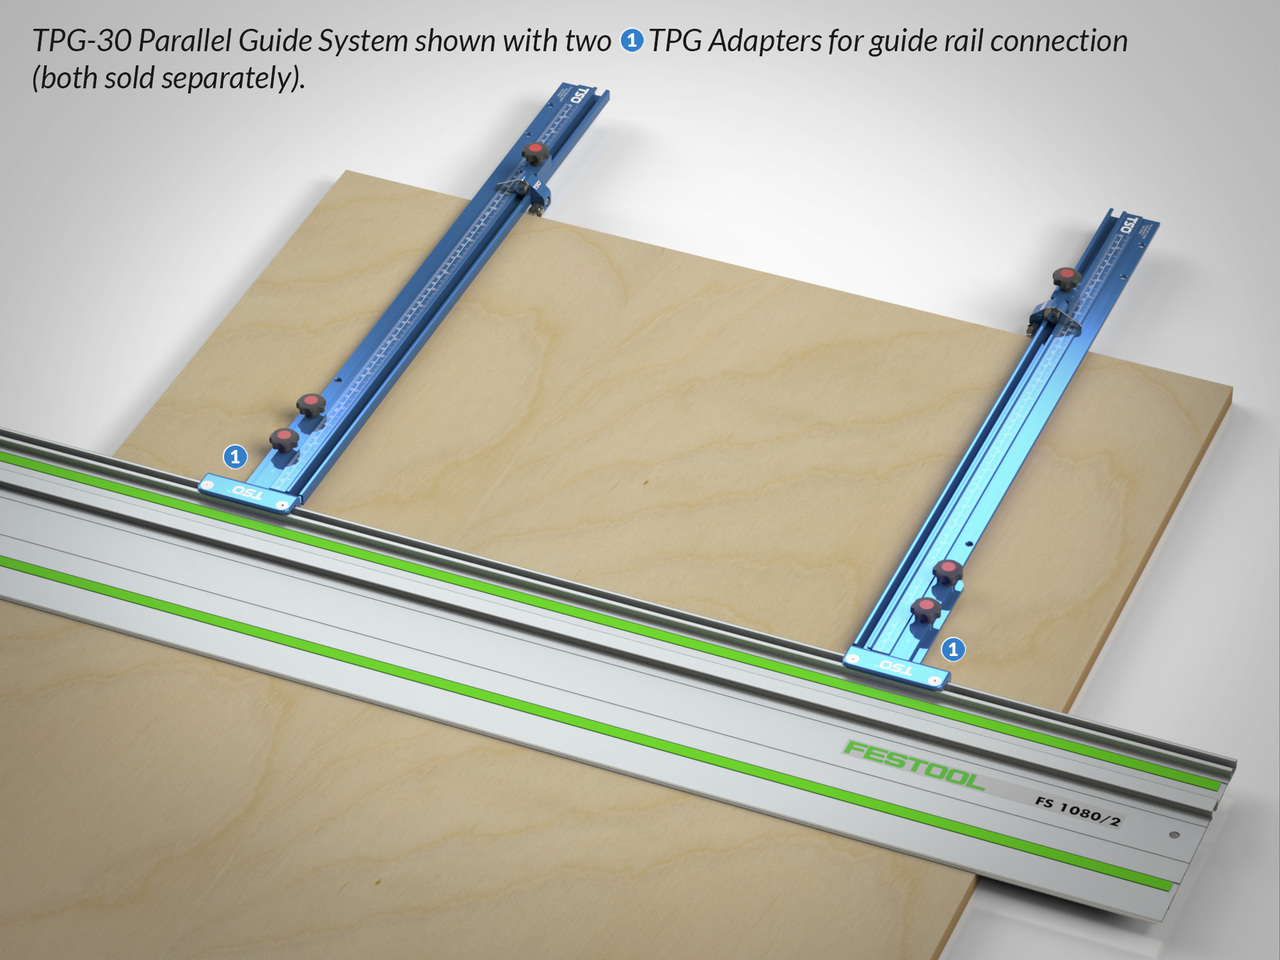 "TPG Parallel Guide System shown with 30"" T-tracks and dual TPG Adapters for connection to the guide rail."